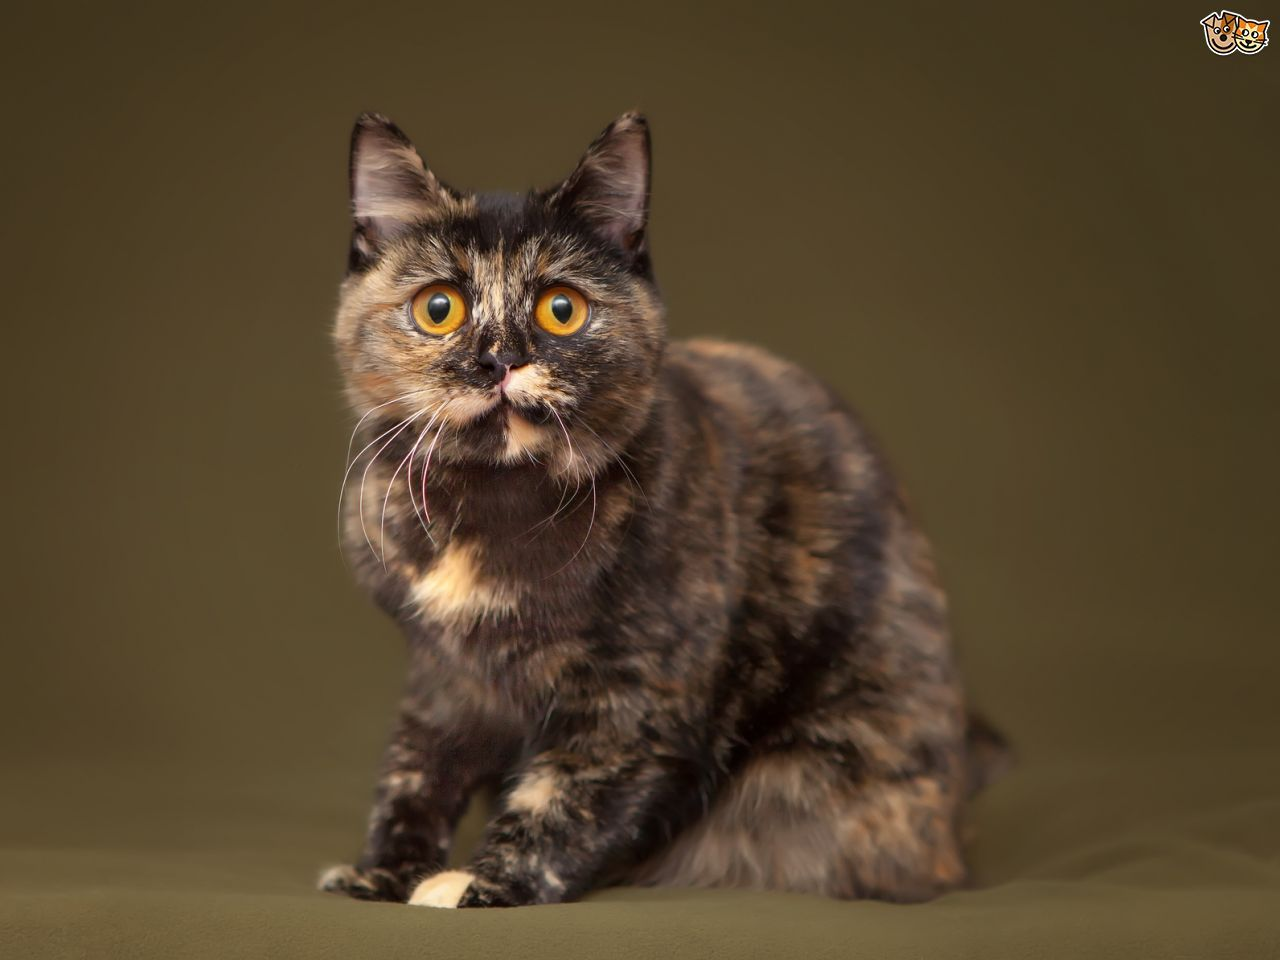 Seven interesting facts about tortoiseshell and calico cats